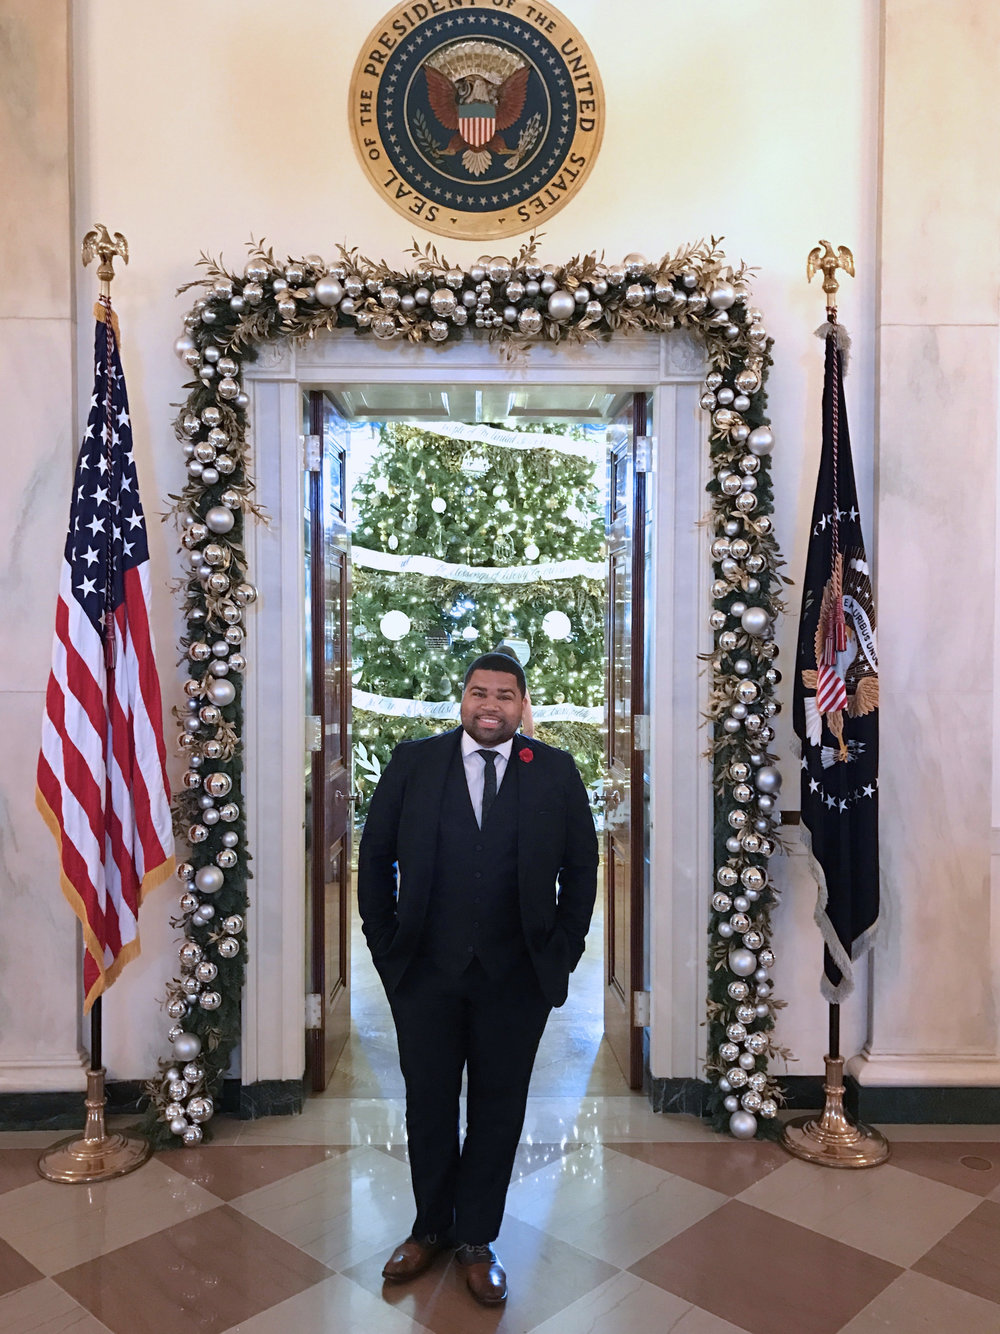 When you're at the White House, you have to get the obligatory photo under the seal.